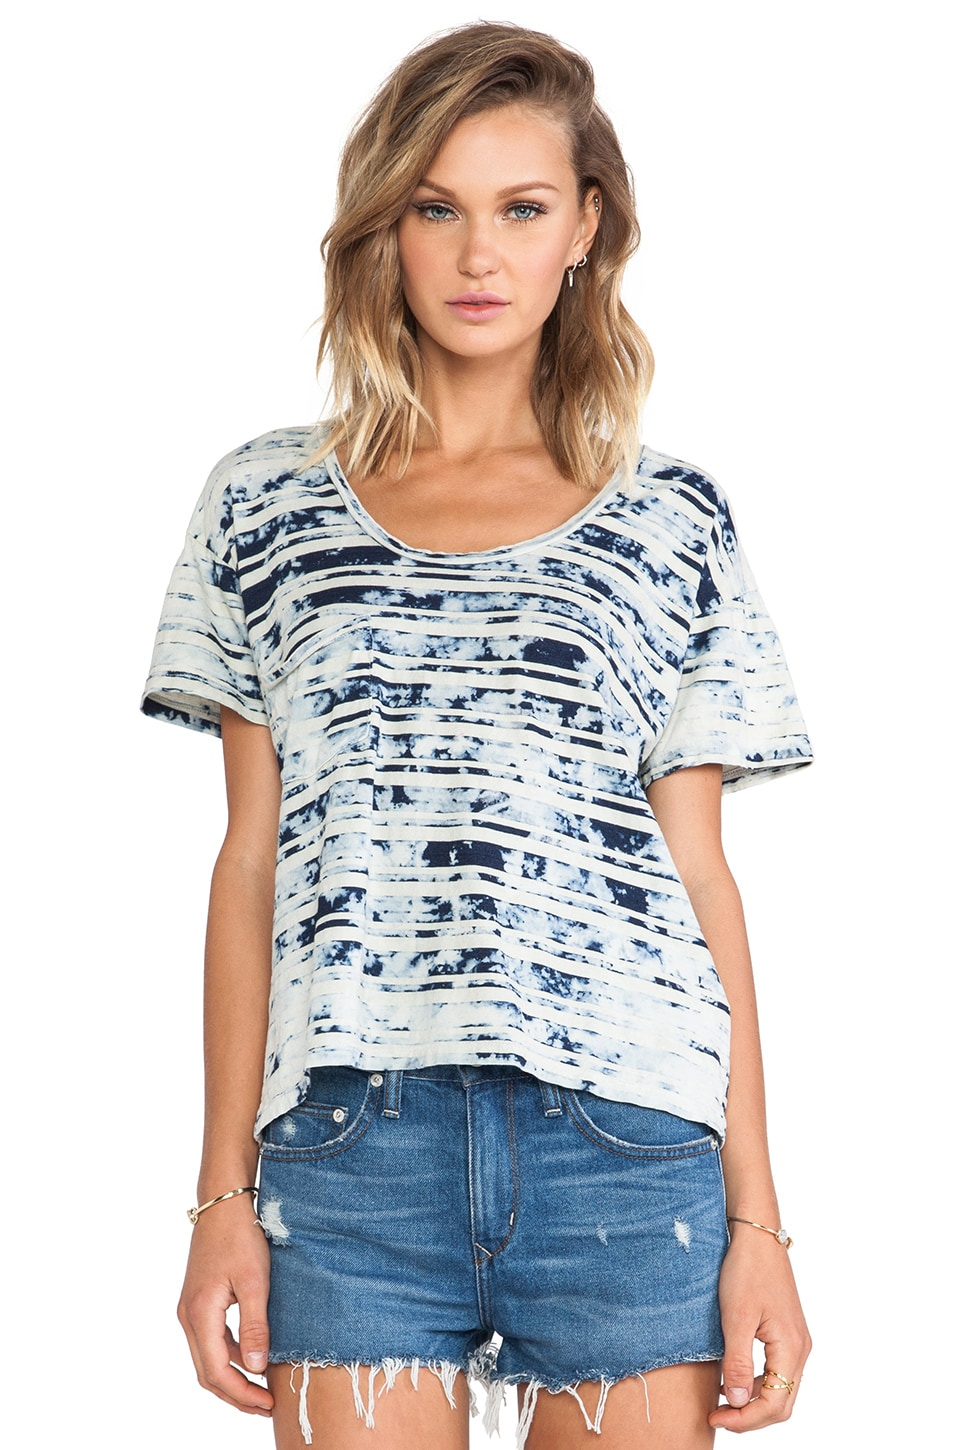 Kain Indigo Pocket Tee in Vintage Wash Indigo Stripe